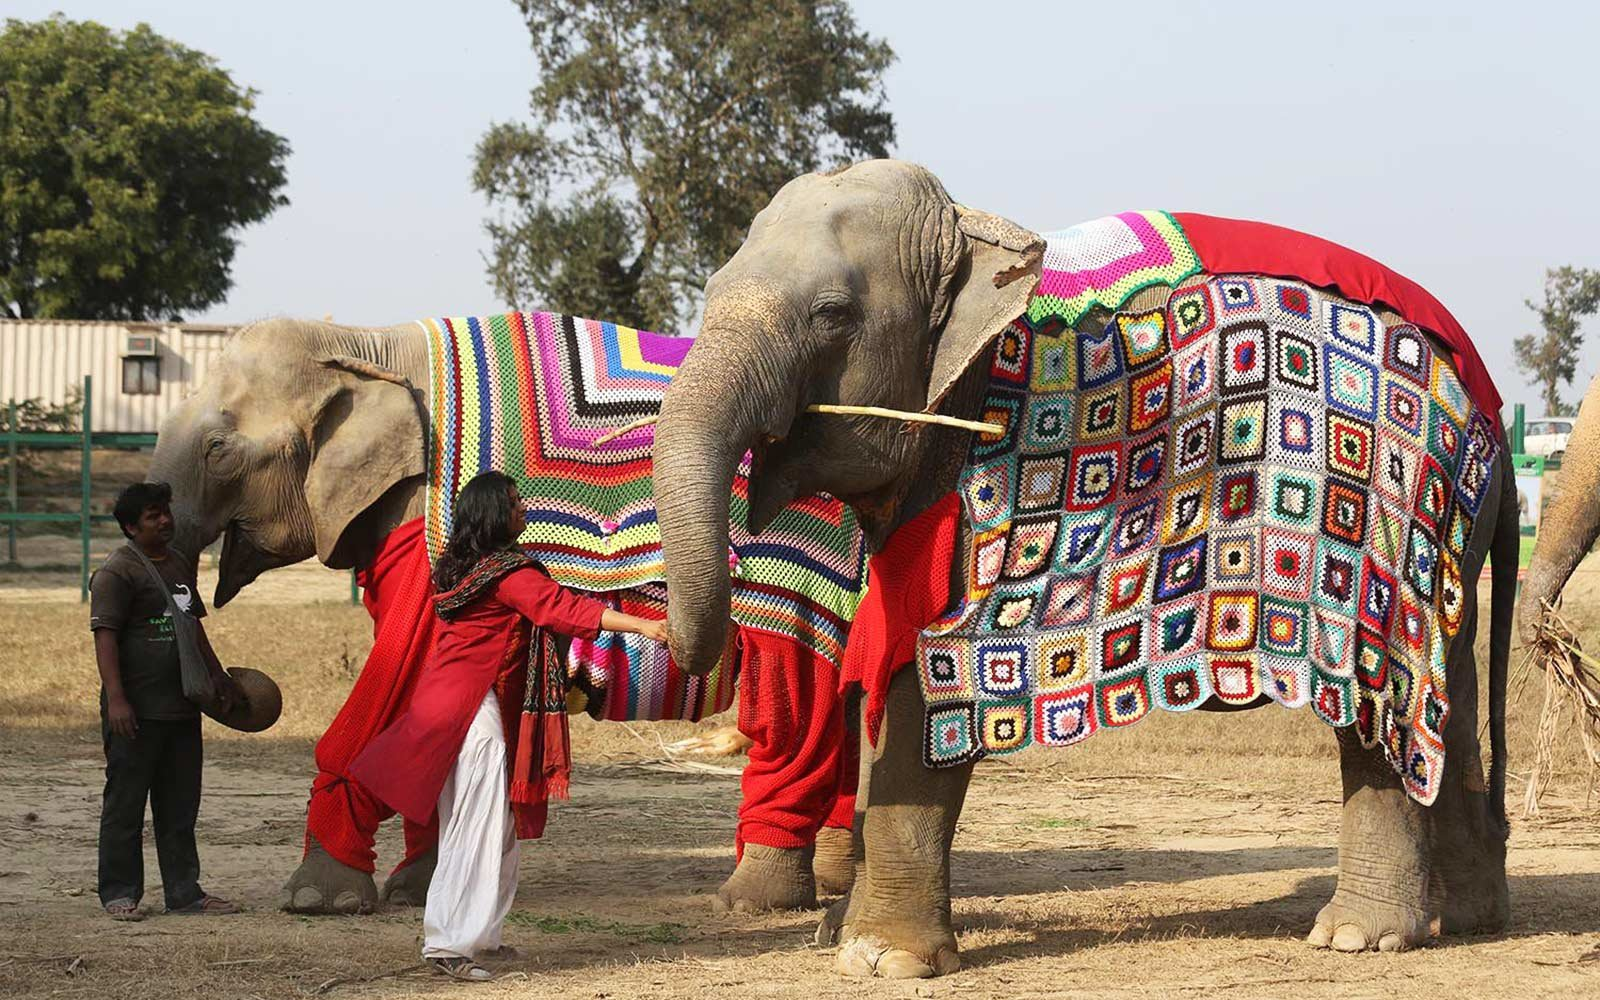 Knitting elephants sweaters